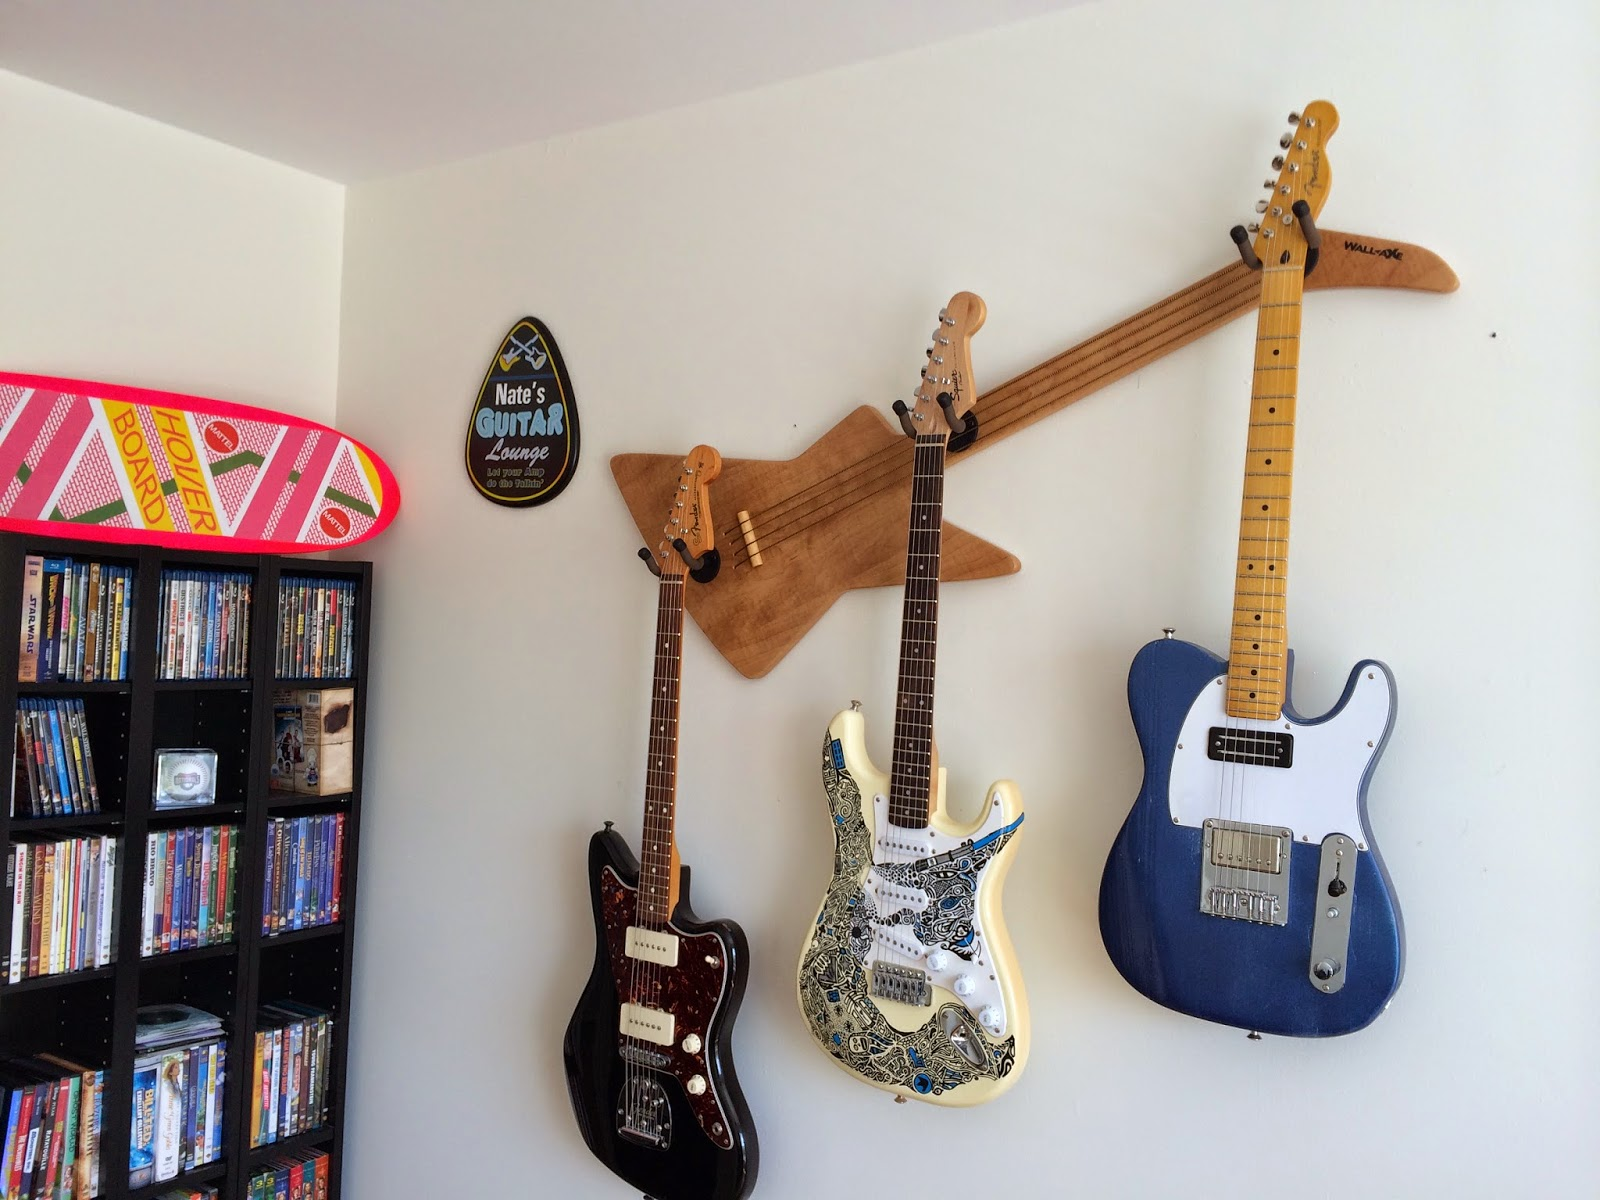 Wall Axeu0027s McFly LX Candlelight Is Perfect For Storing Guitars In A Tiny  Apartment